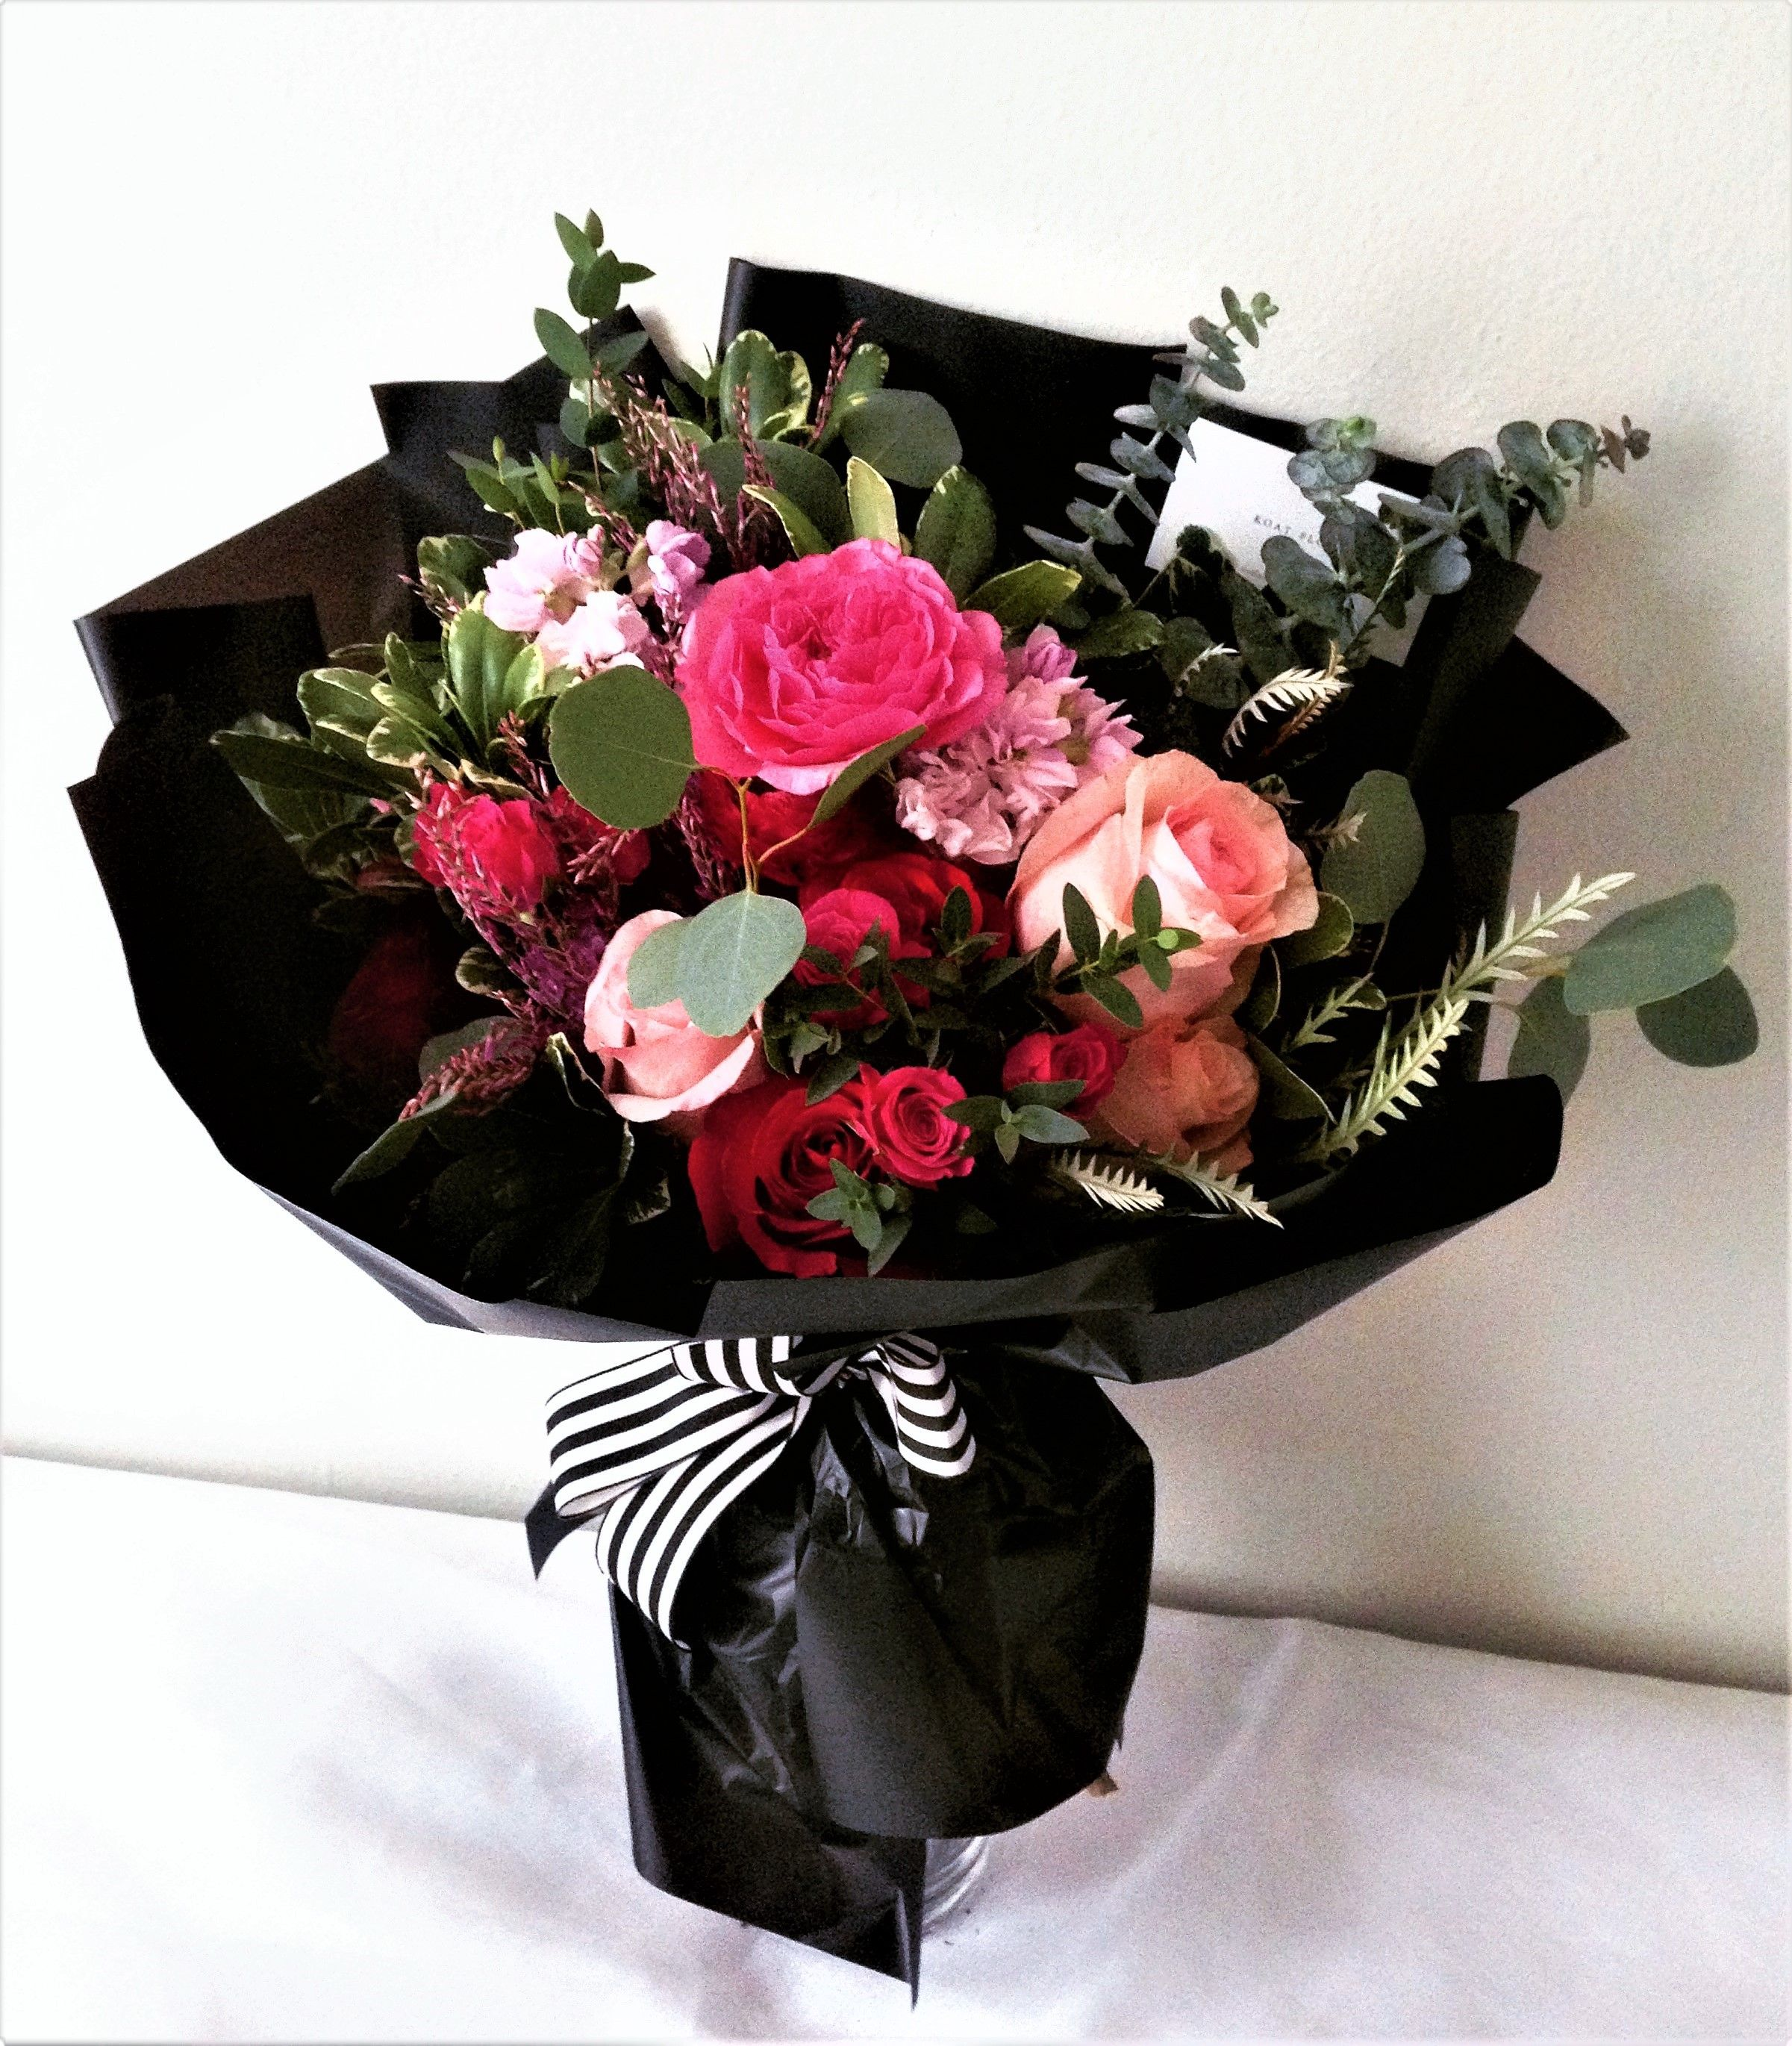 Send the Seasonal Handtied bouquet of flowers from Koat